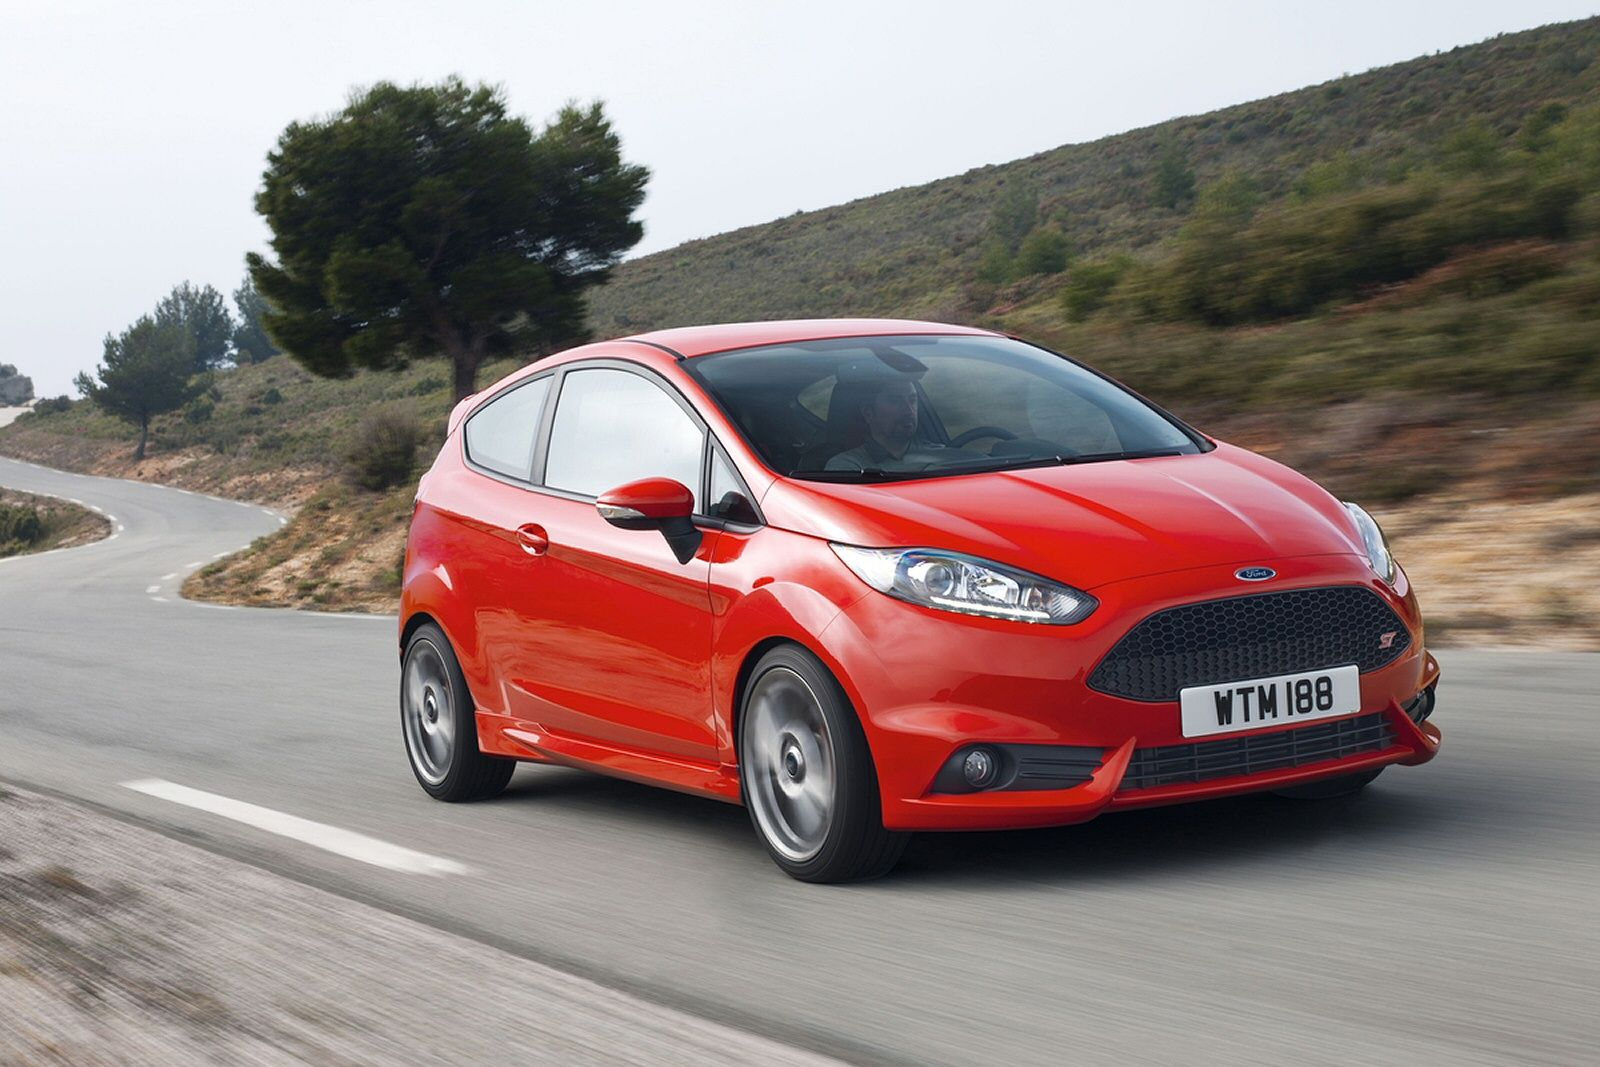 Super Suped Up Supermini The 2014 Ford Fiesta St Review Video